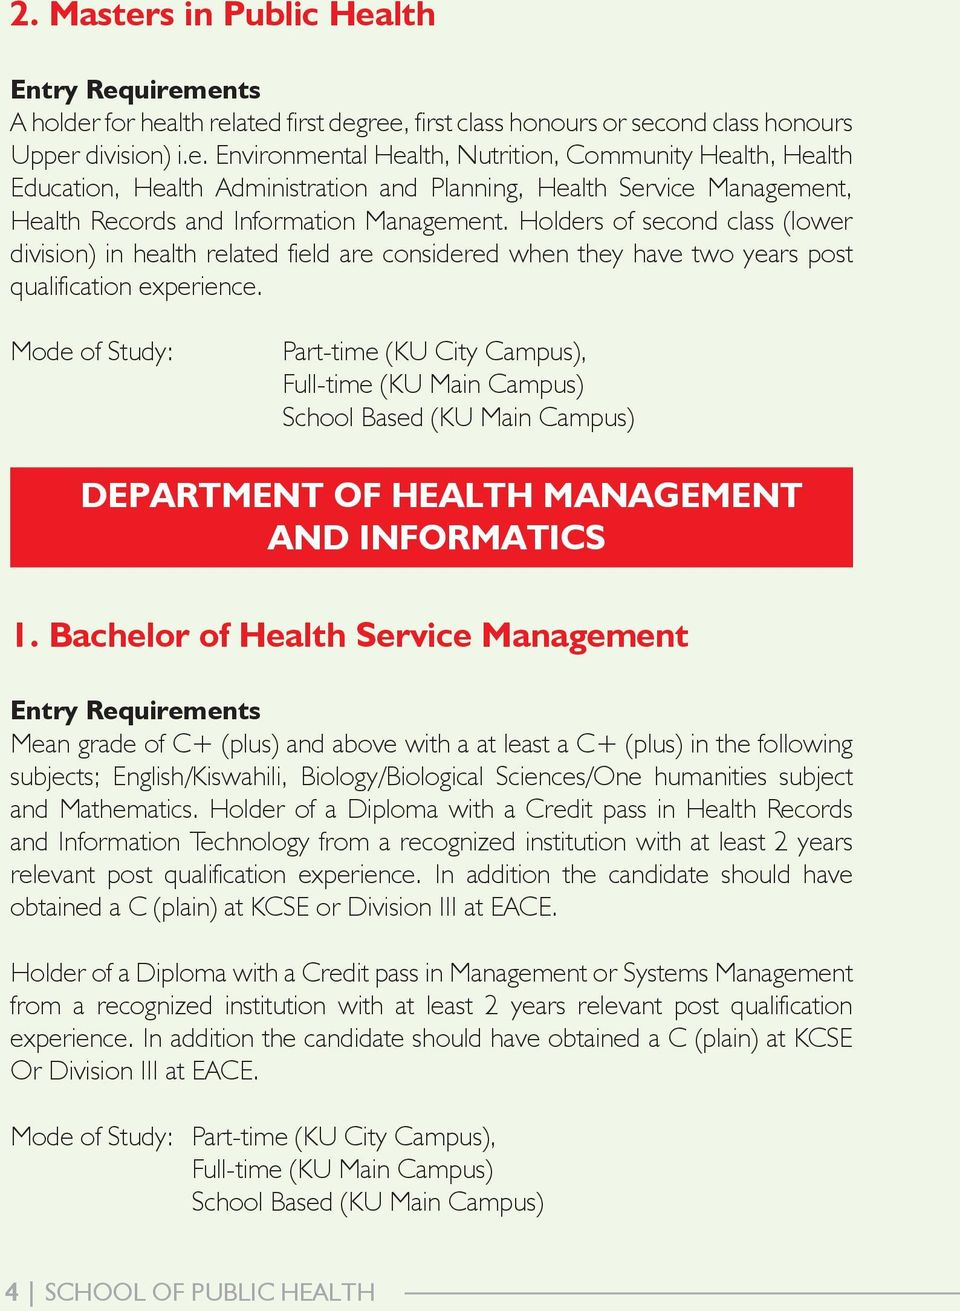 Mode of Study: Part-time (KU City Campus), DEPARTMENT OF HEALTH MANAGEMENT AND INFORMATICS 1.